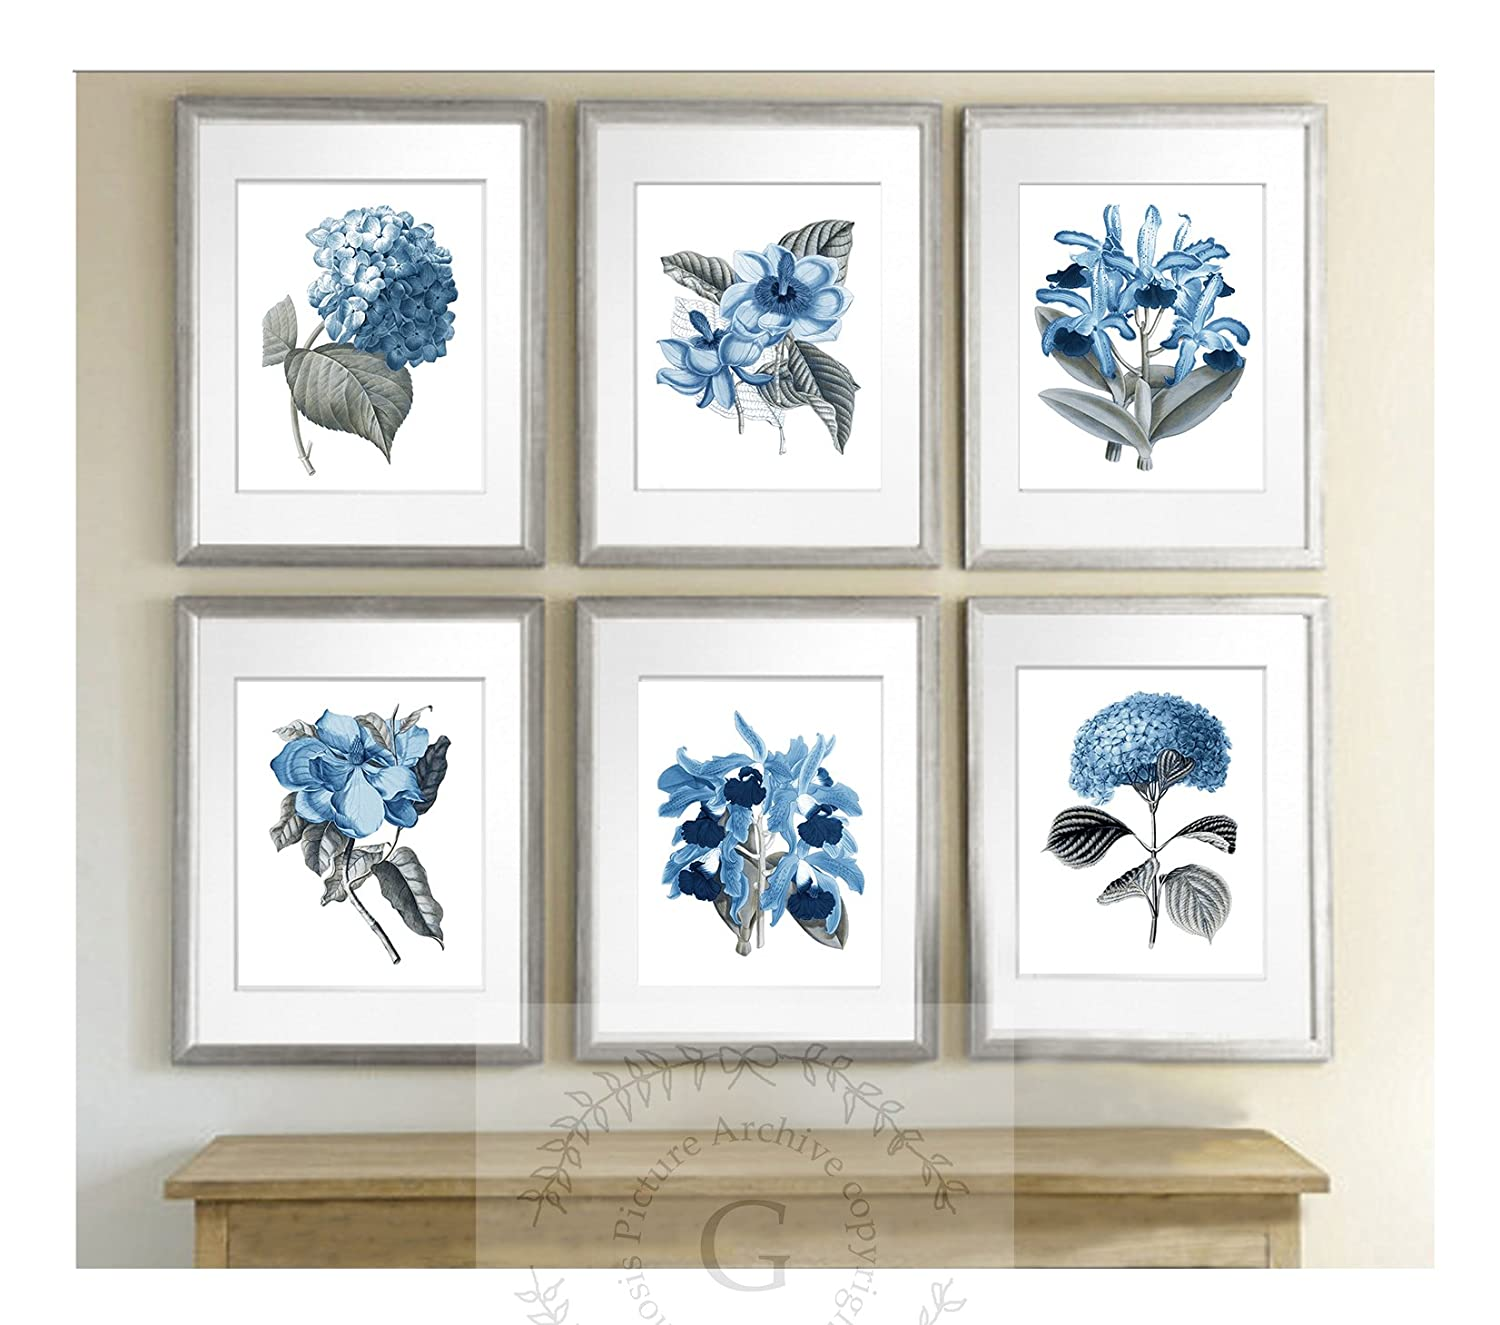 Blue Flowers Botanical Prints Set of 6 Reproduction Unframed Girls Room Wall Art Prints